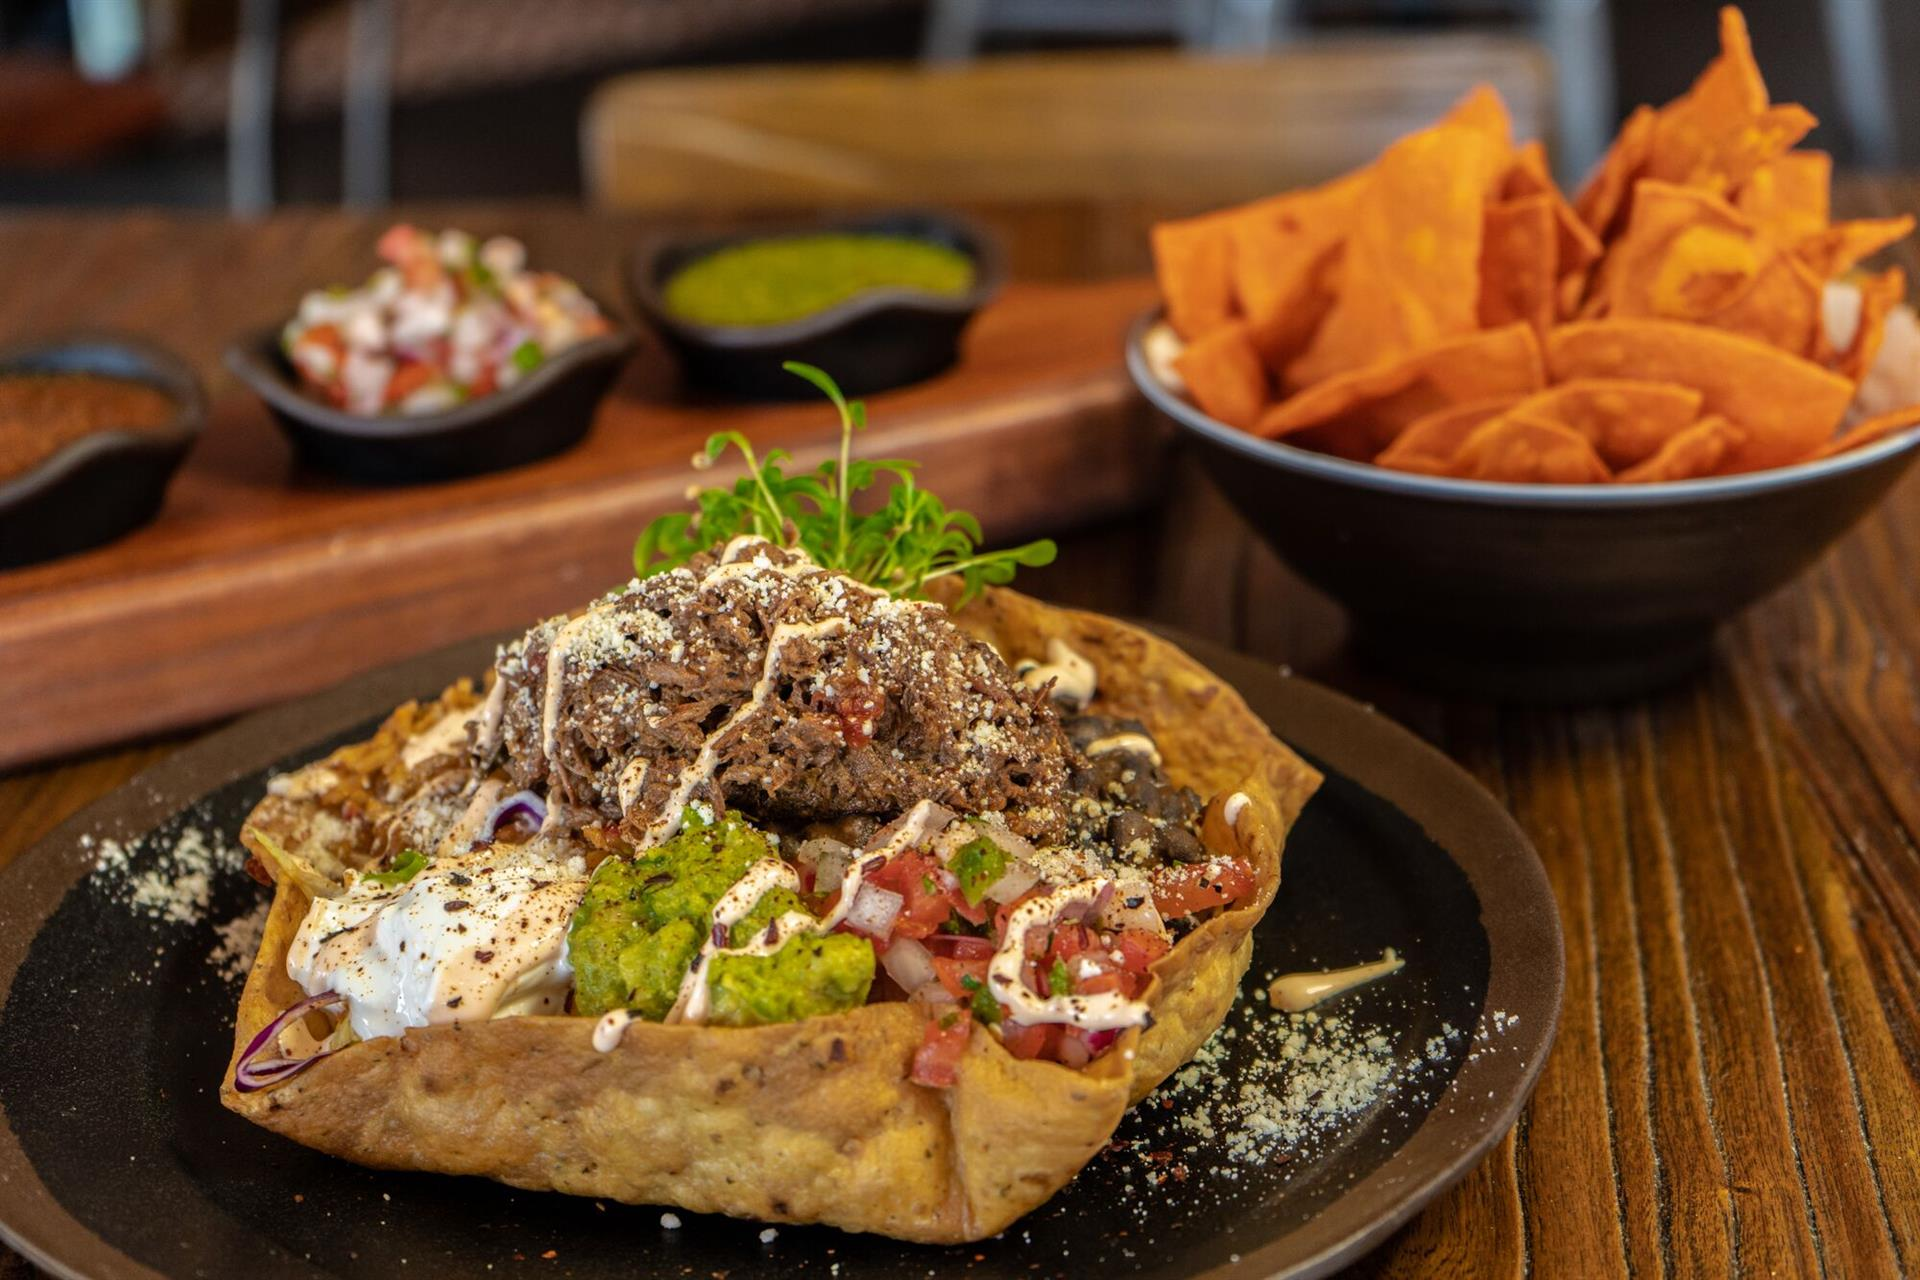 Taco salad filled with sour cream, rico de gallo, guacamole, black beans and a choice of meat in a crispy tortilla bowl next to the trio of salsa and chips